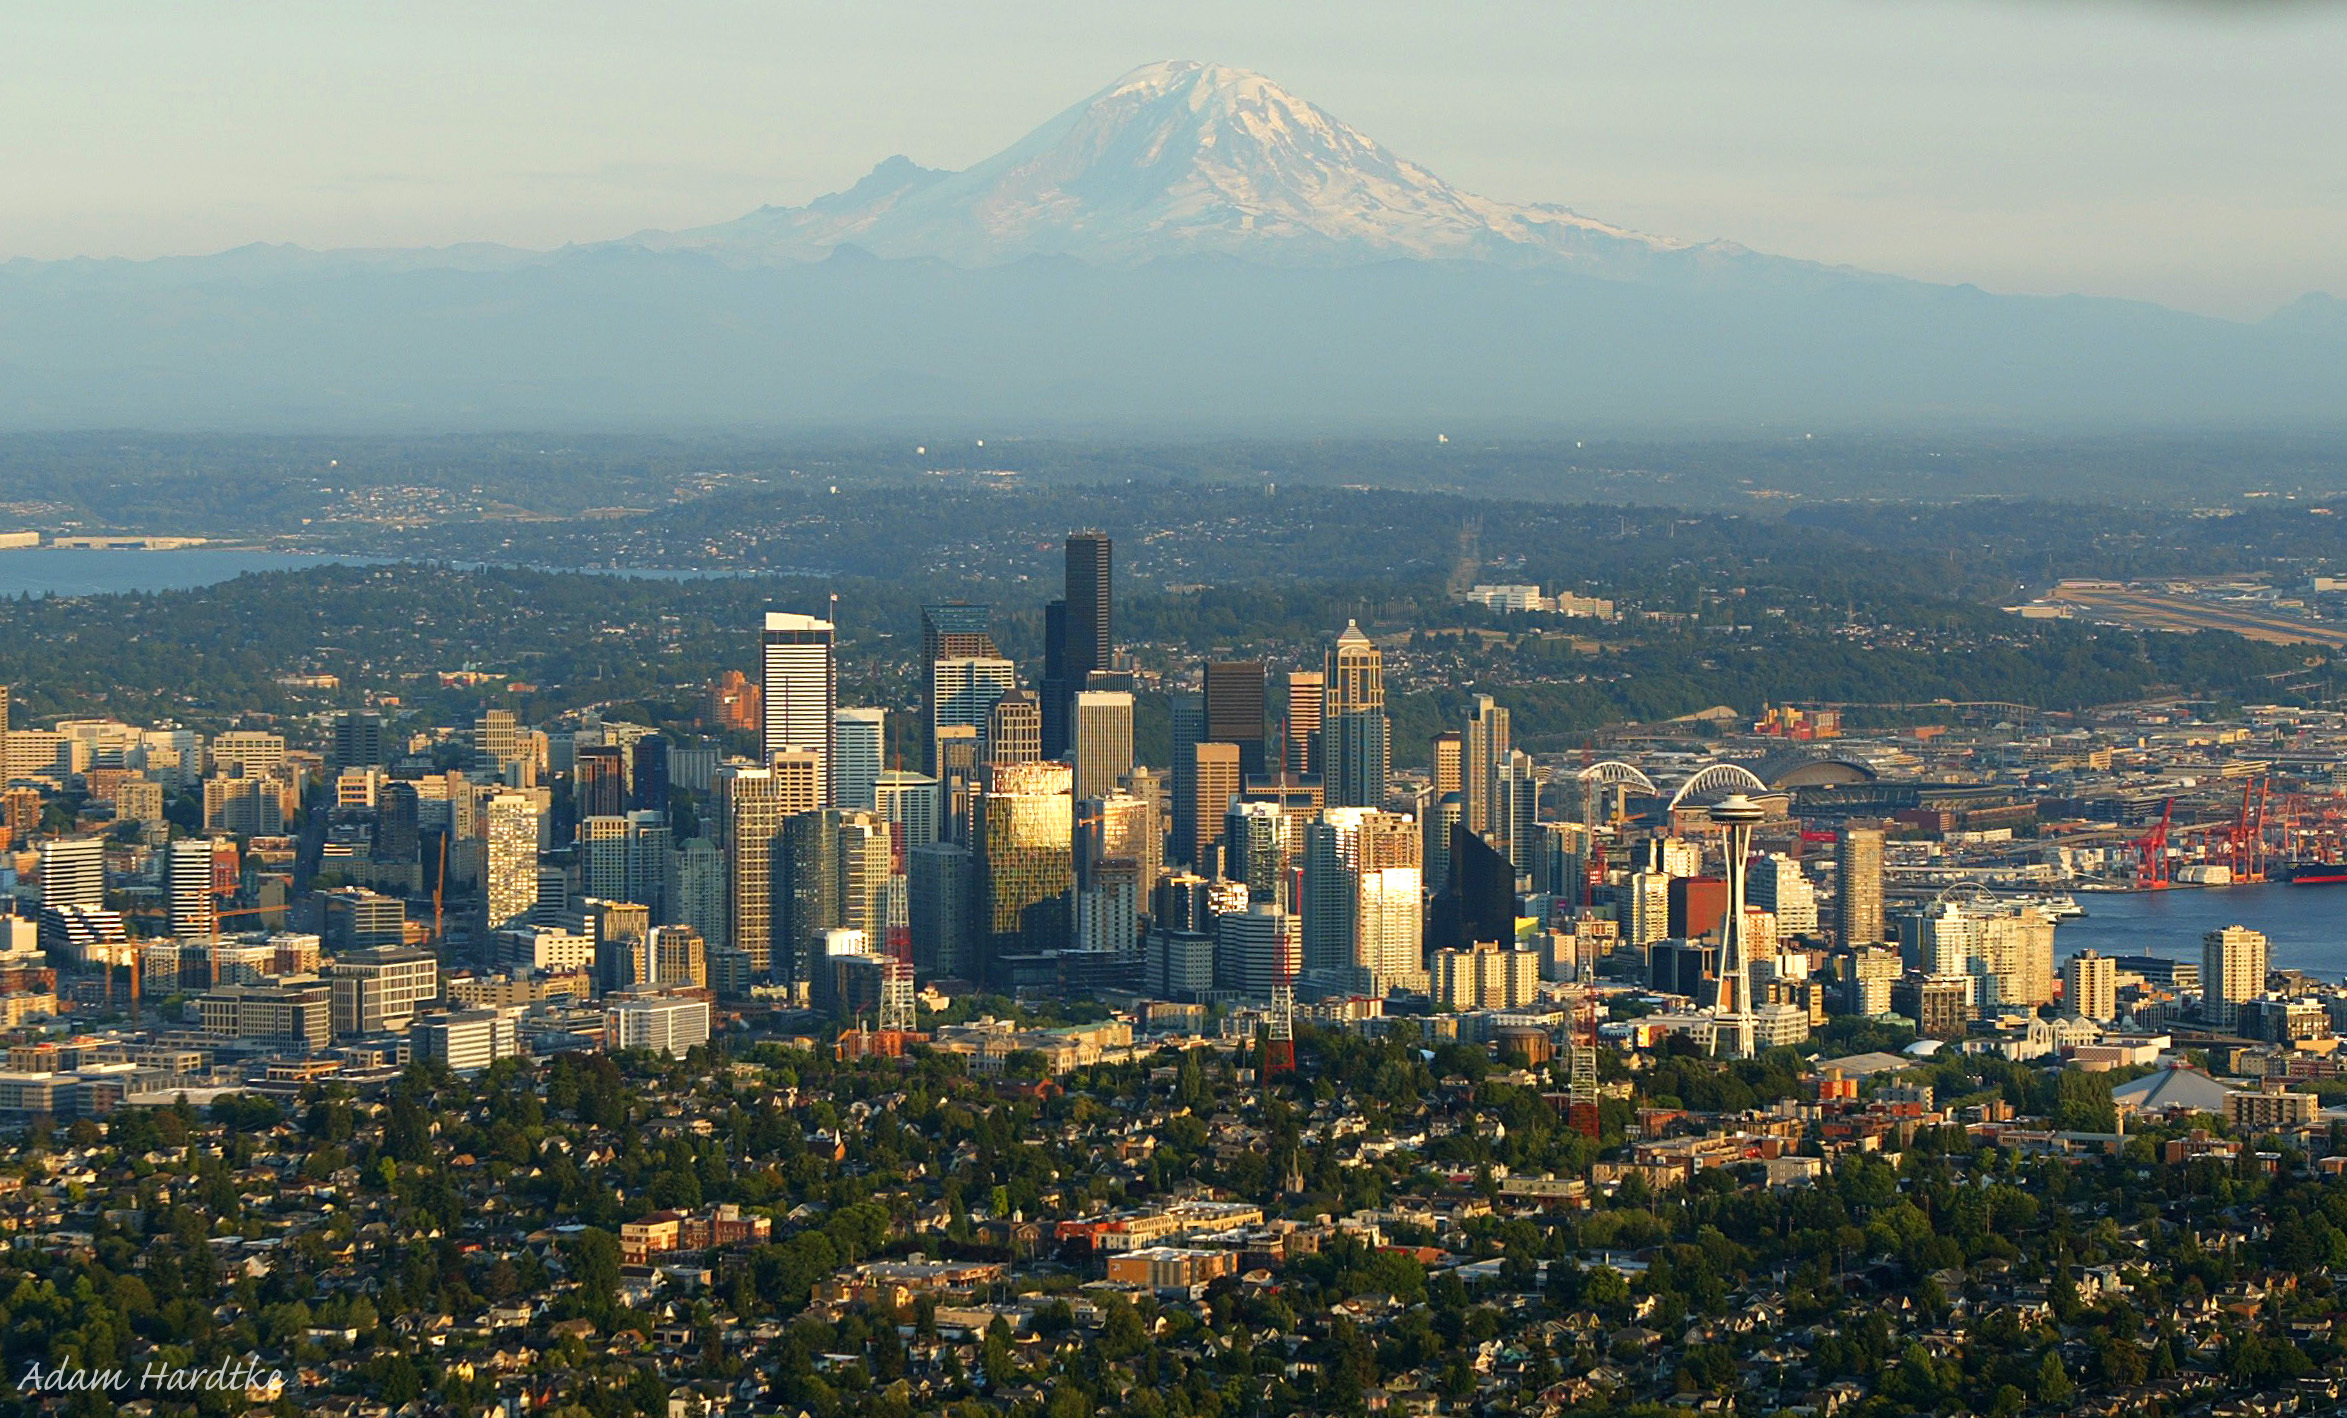 Downtown Seattle during the magic hour with Mt. Rainier looming in the distance